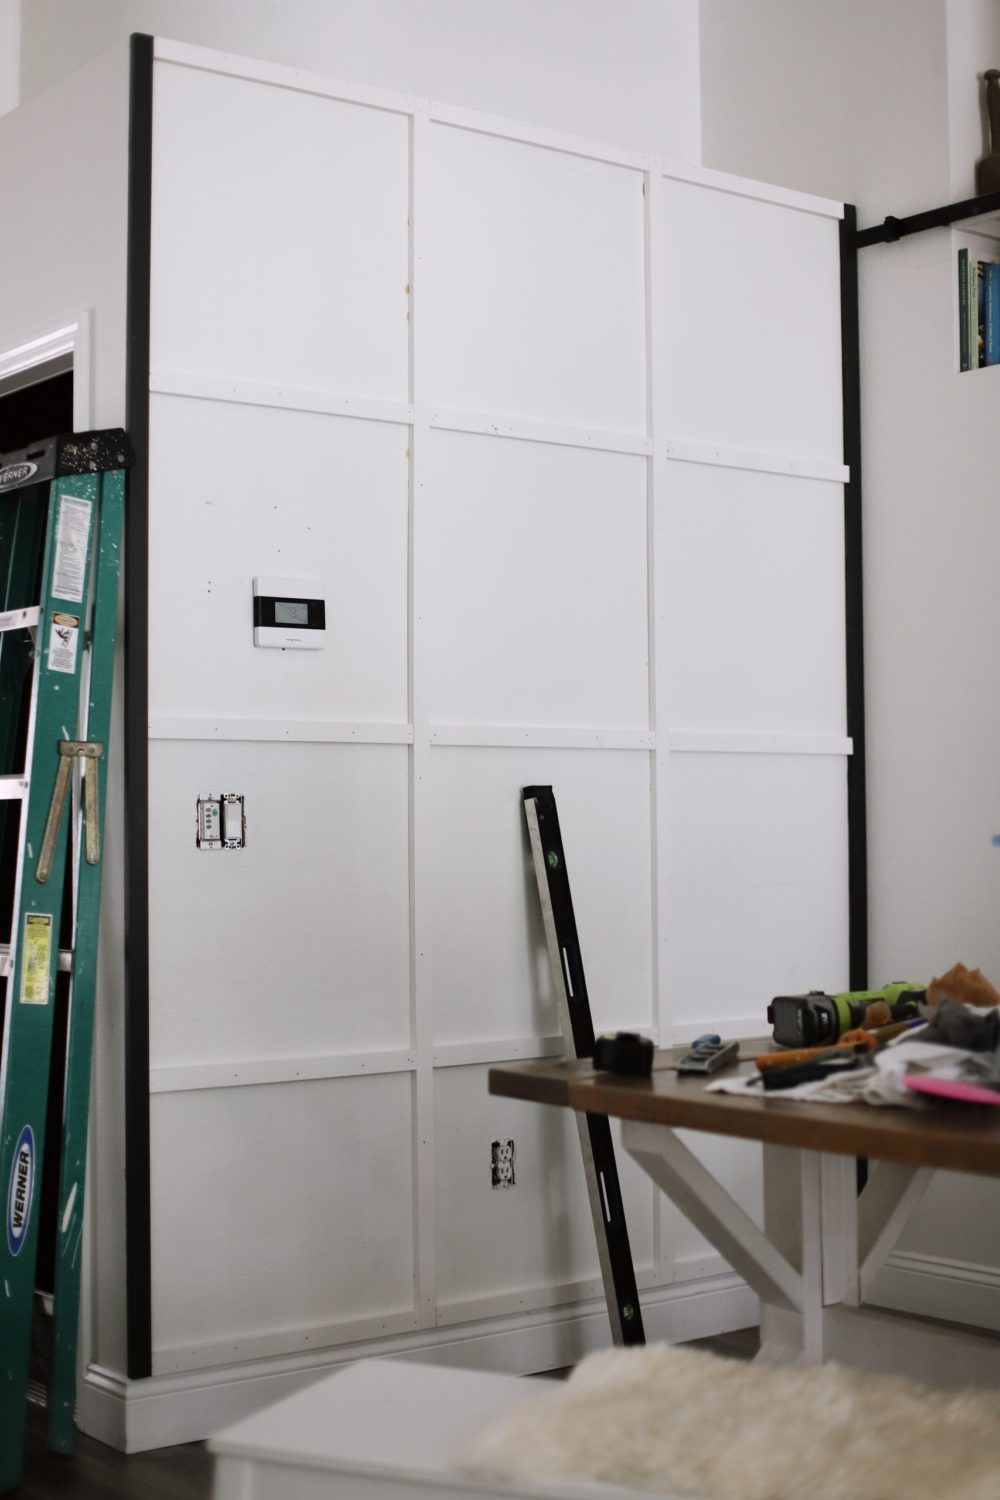 BEFORE AND AFTER Tutorial: DIY Wood Grid Wall! How to create a stunning and bold accent wall with a DIY wooden grid. Click for the full tutorial. | Tutorial: Board and Batten Grid Wall by popular Florida DIY blog, Fresh Mommy Blog: image of a white board and batten grid wall.